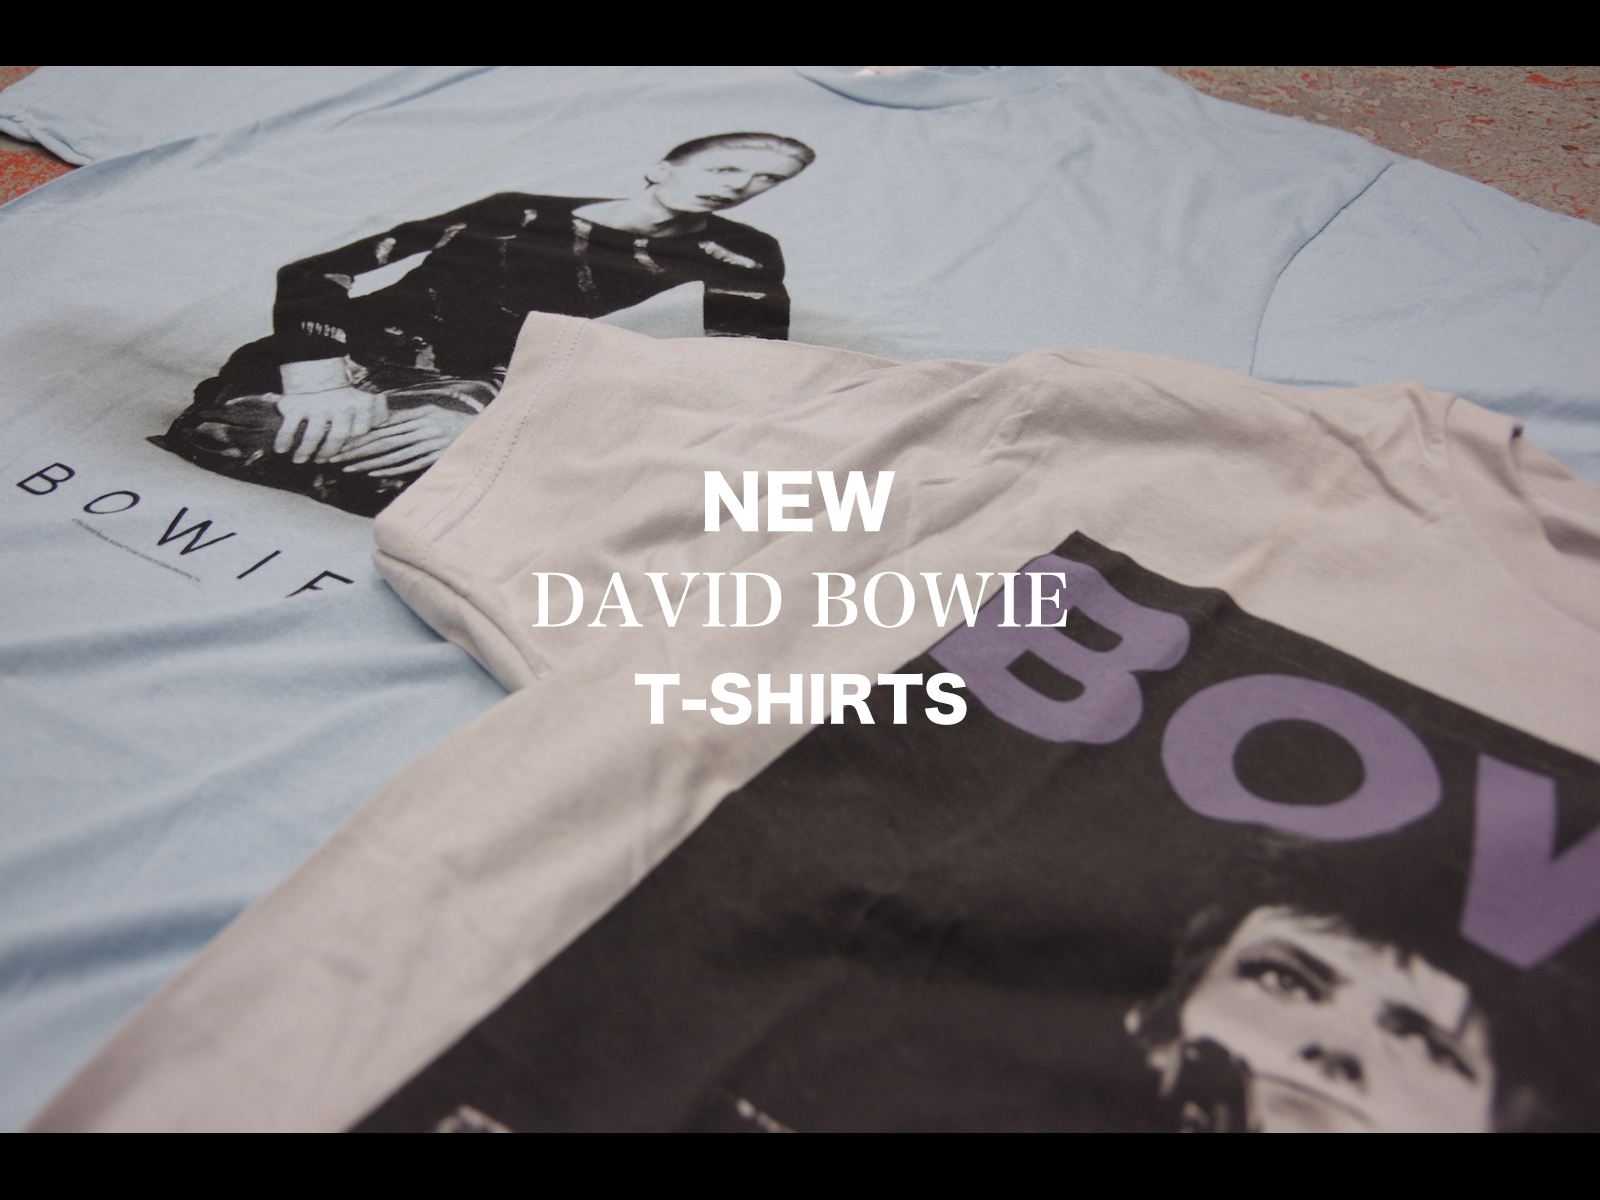 NEW ARRIVAL – DAVID BOWIE T-SHIRTS